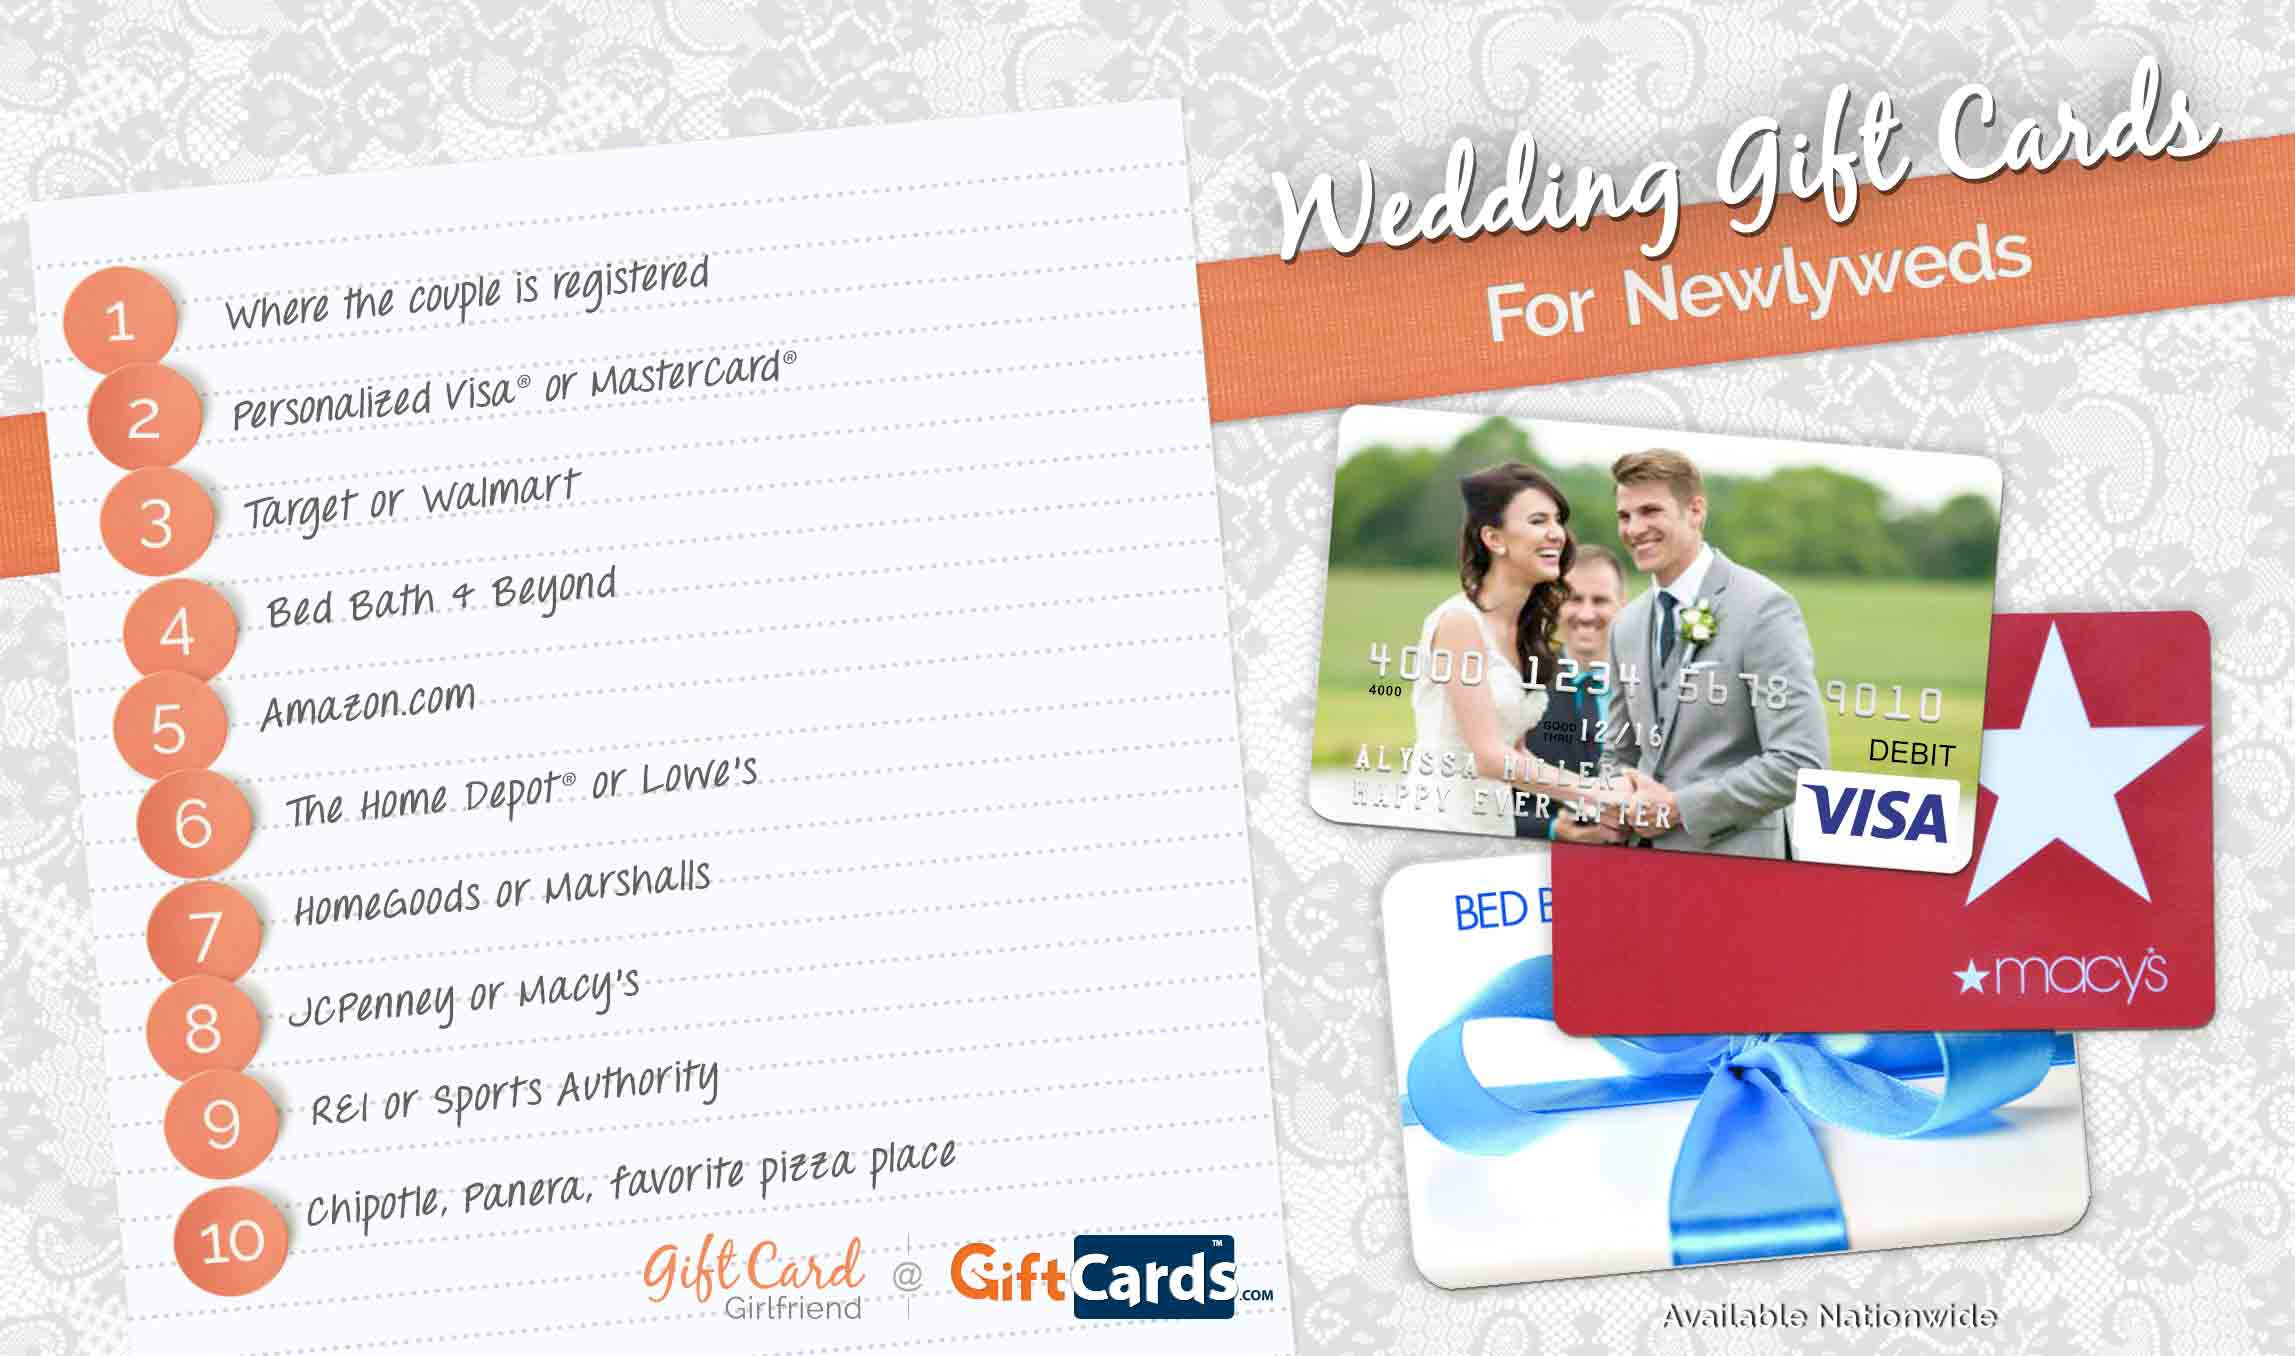 Top 10 wedding gift cards to buy for newlyweds gcg for Best house buying websites